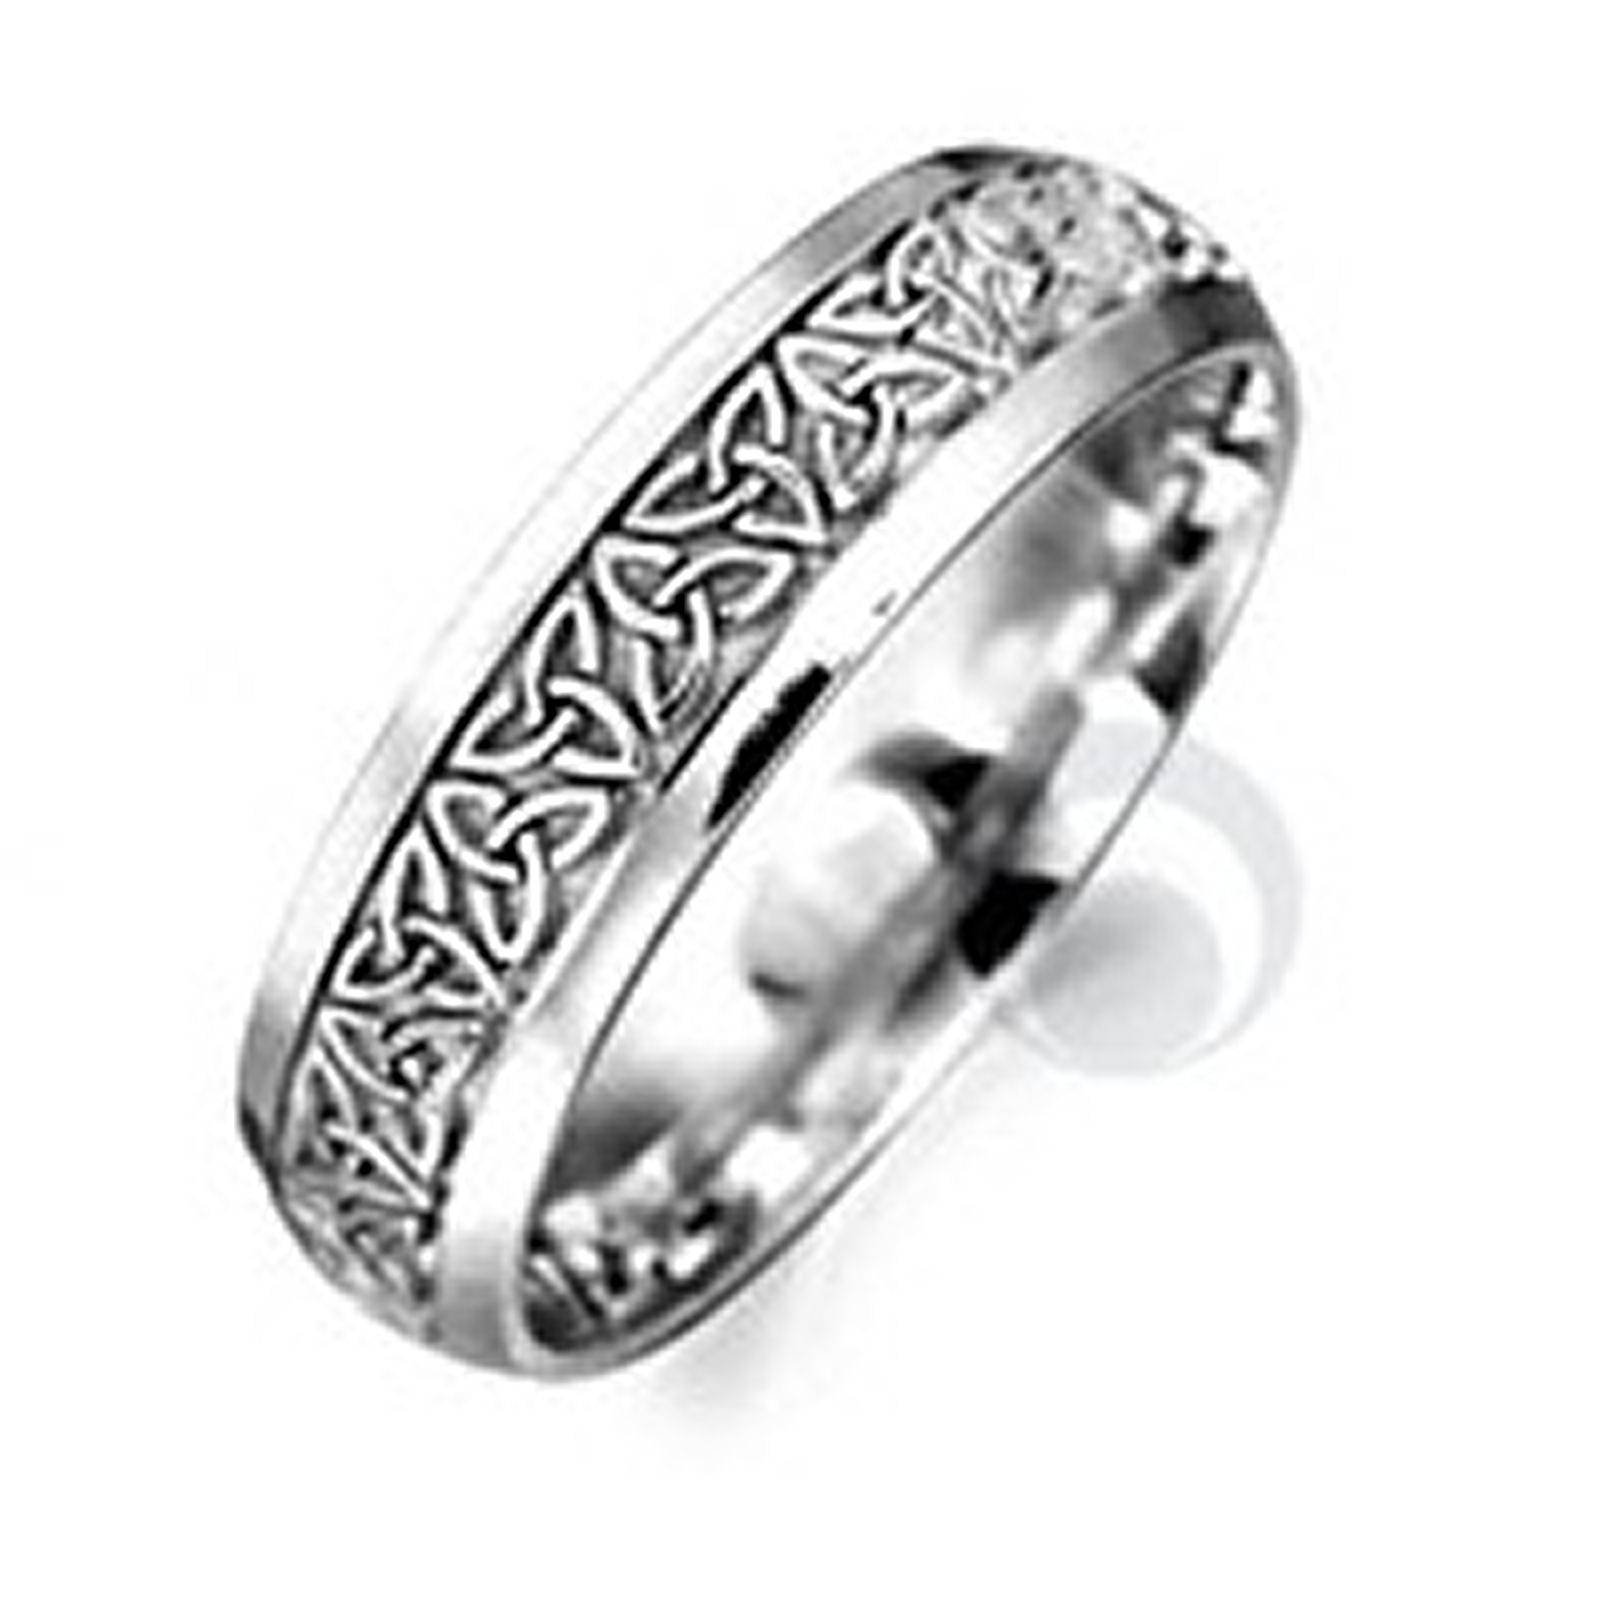 Celtic Patterned Platinum Wedding Ring Wedding Dress From The Intended For Mens Celtic Engagement Rings (View 10 of 15)